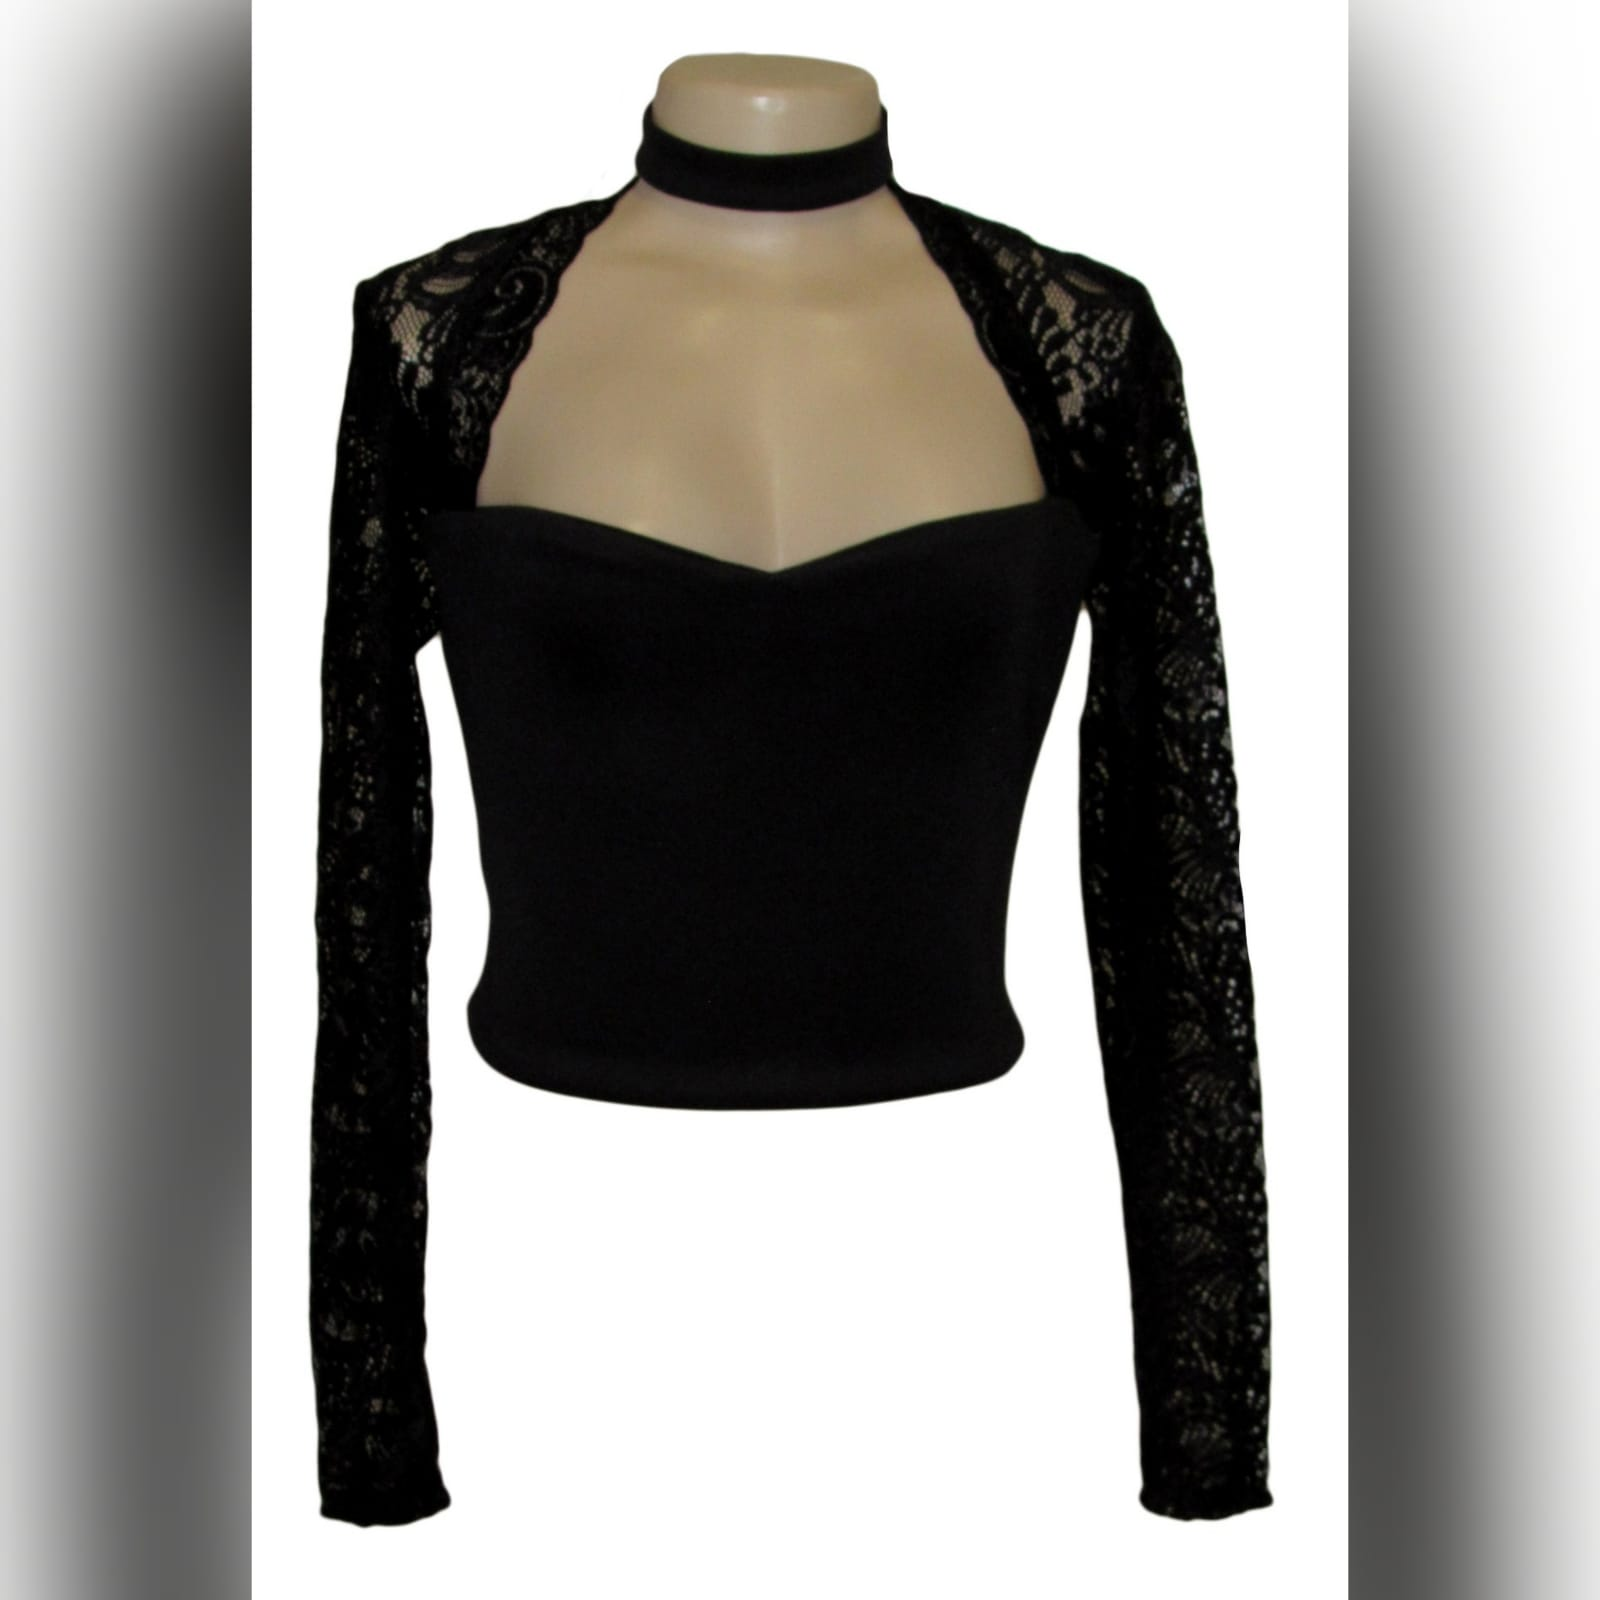 Black choker neckline prom after party crop top 1 black choker neckline matric after party crop top. With shoulders and long lace sleeves